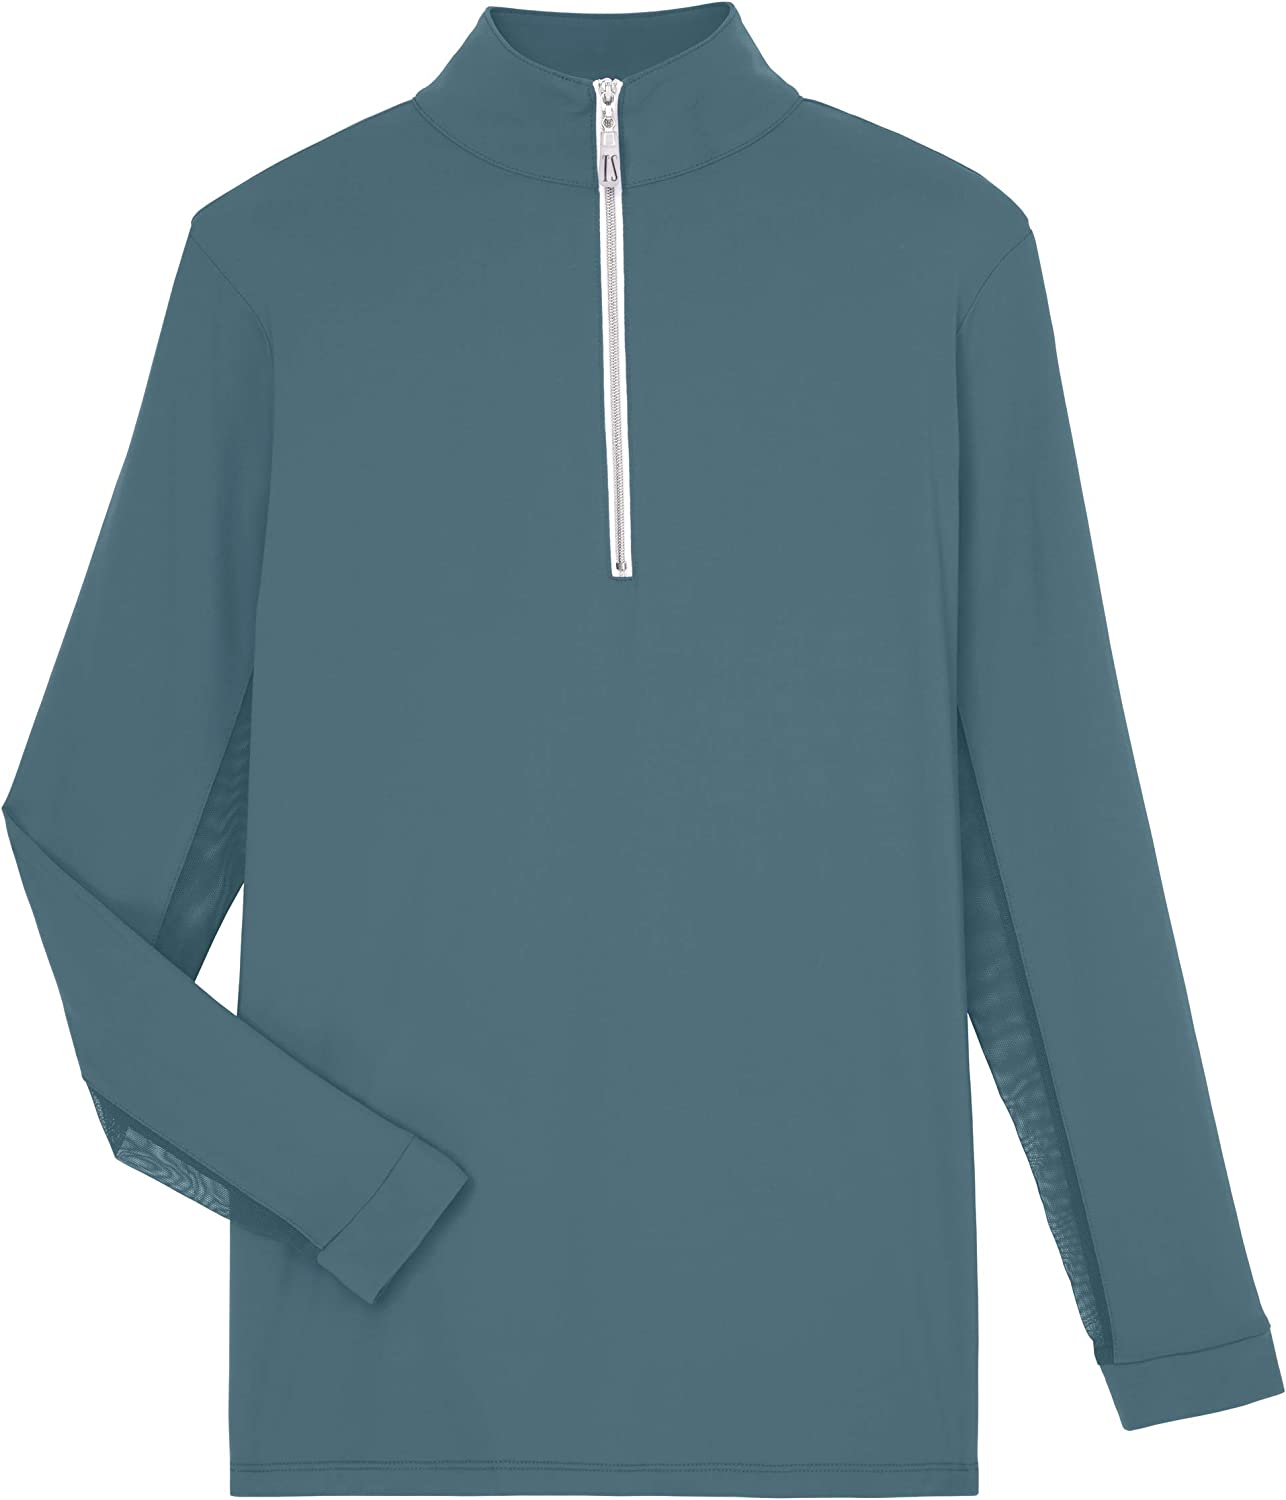 Lake Blue//Silver THE TAILORED SPORTSMAN Ladies Long Sleeve Sun Shirt Small